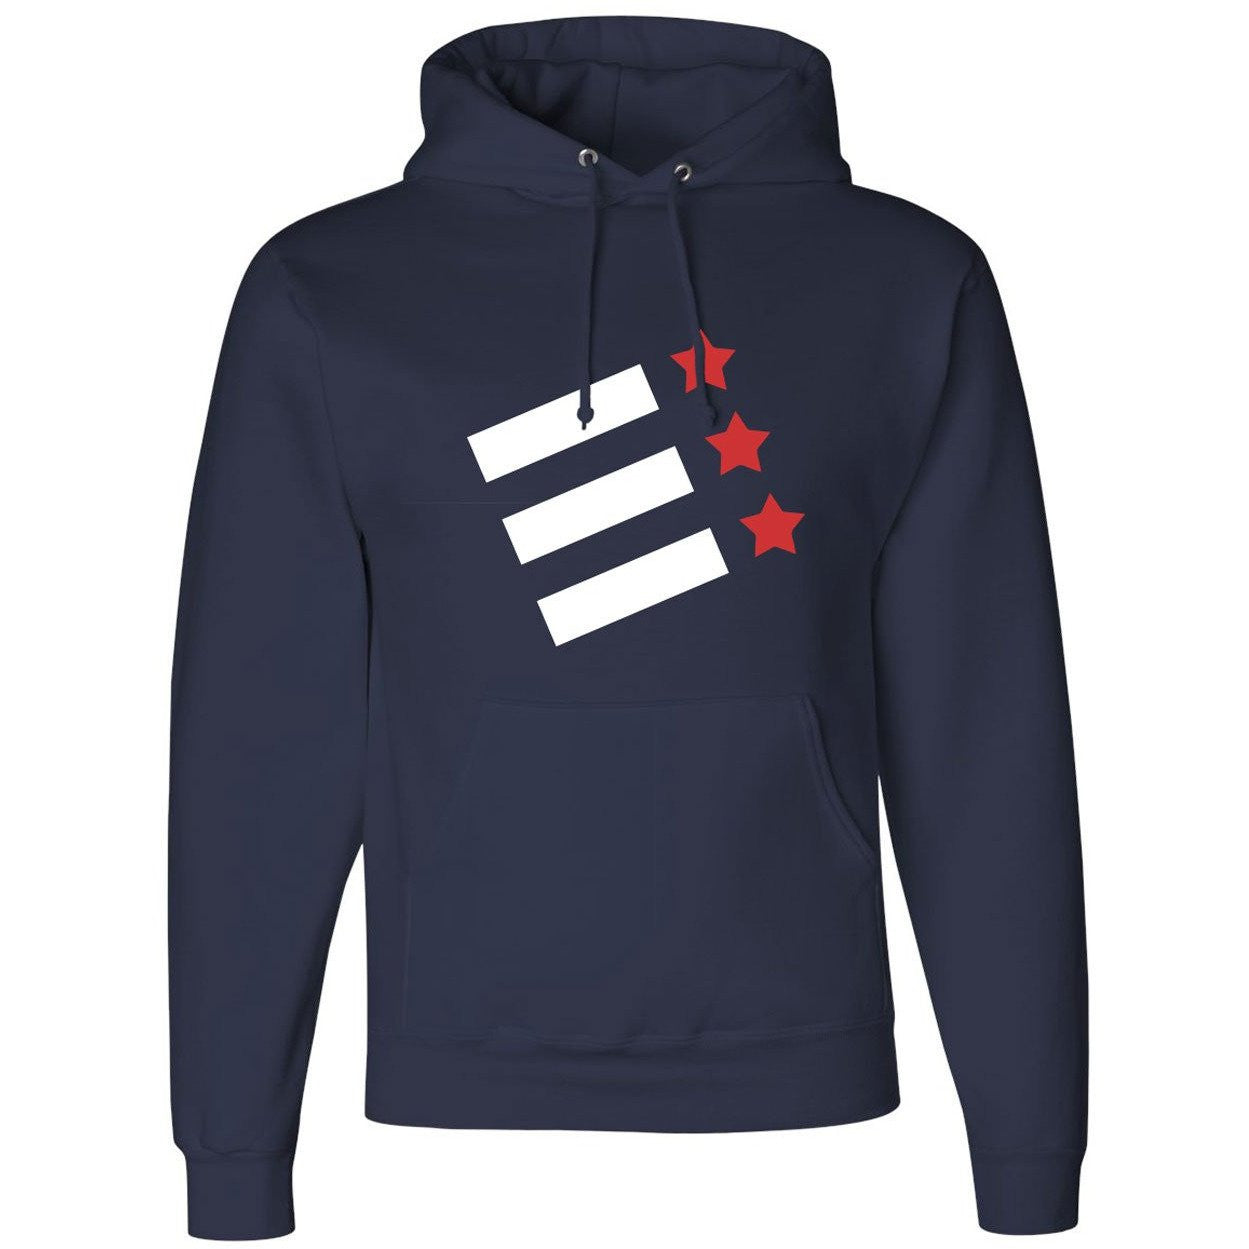 50/50 Hooded Rock Creek Rowing Pullover Sweatshirt